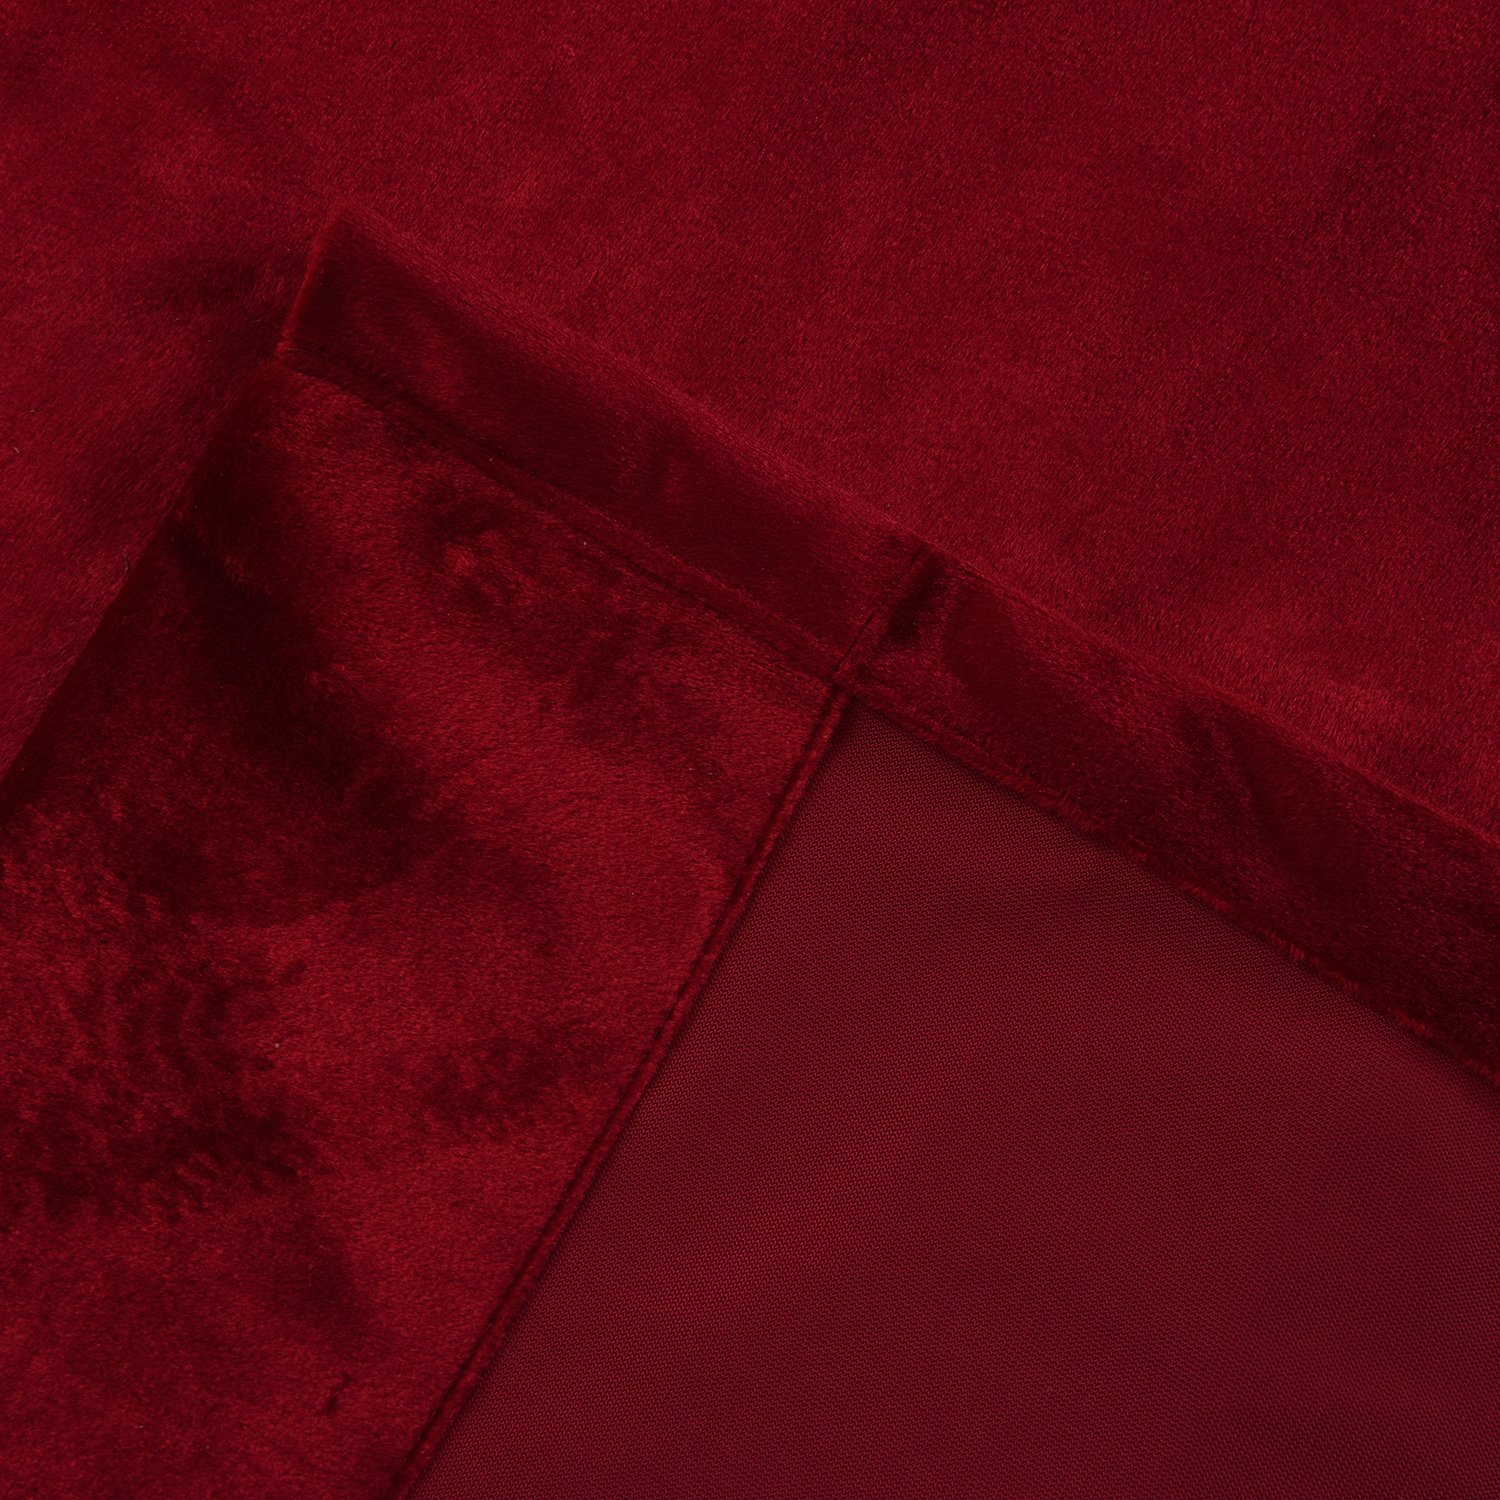 Cherry Home Set of 2 Classic Blackout Velvet Curtains Panels Home Theater Grommet Drapes Eyelet 52Wx63L-inch Red(2 panels)Theater  Bedroom  Living Room  Hotel by Cherry Home (Image #10)